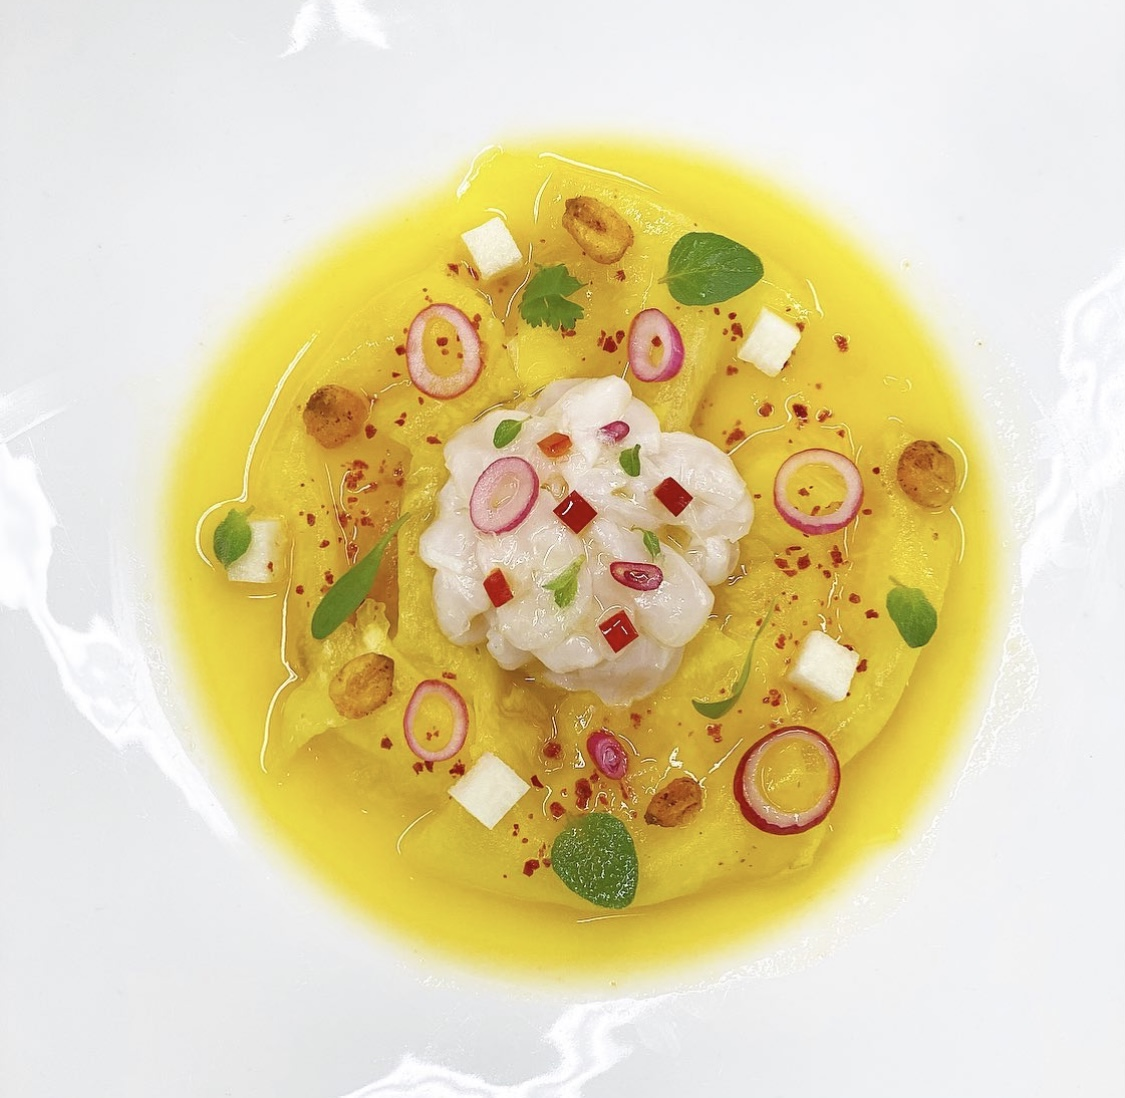 A close up of a Latin dish with pineapple